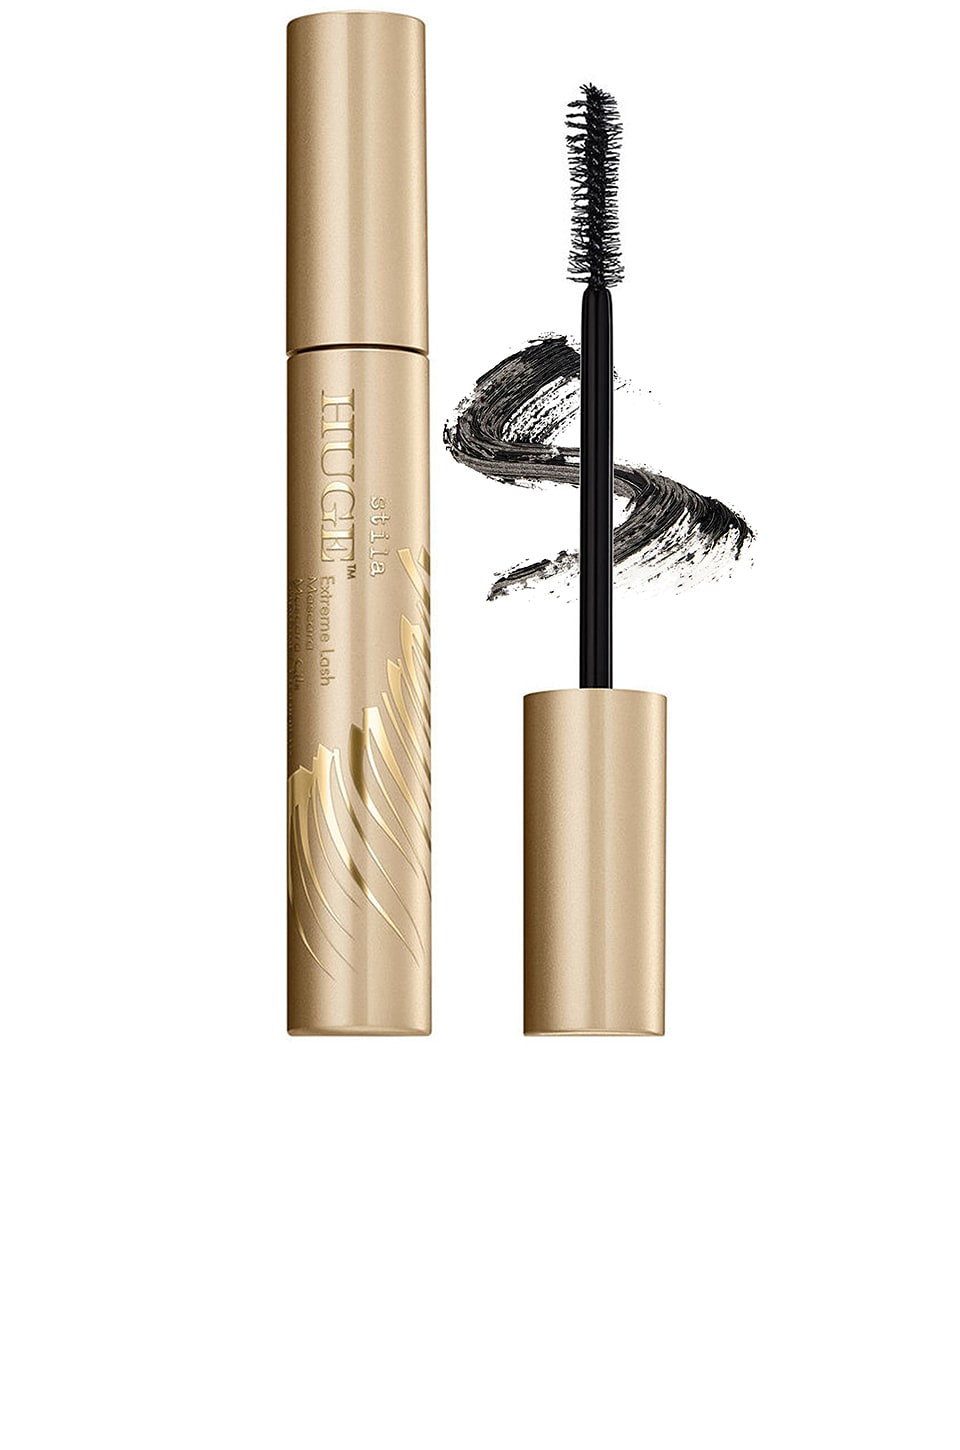 Stila Huge Extreme Lash Mascara en Black